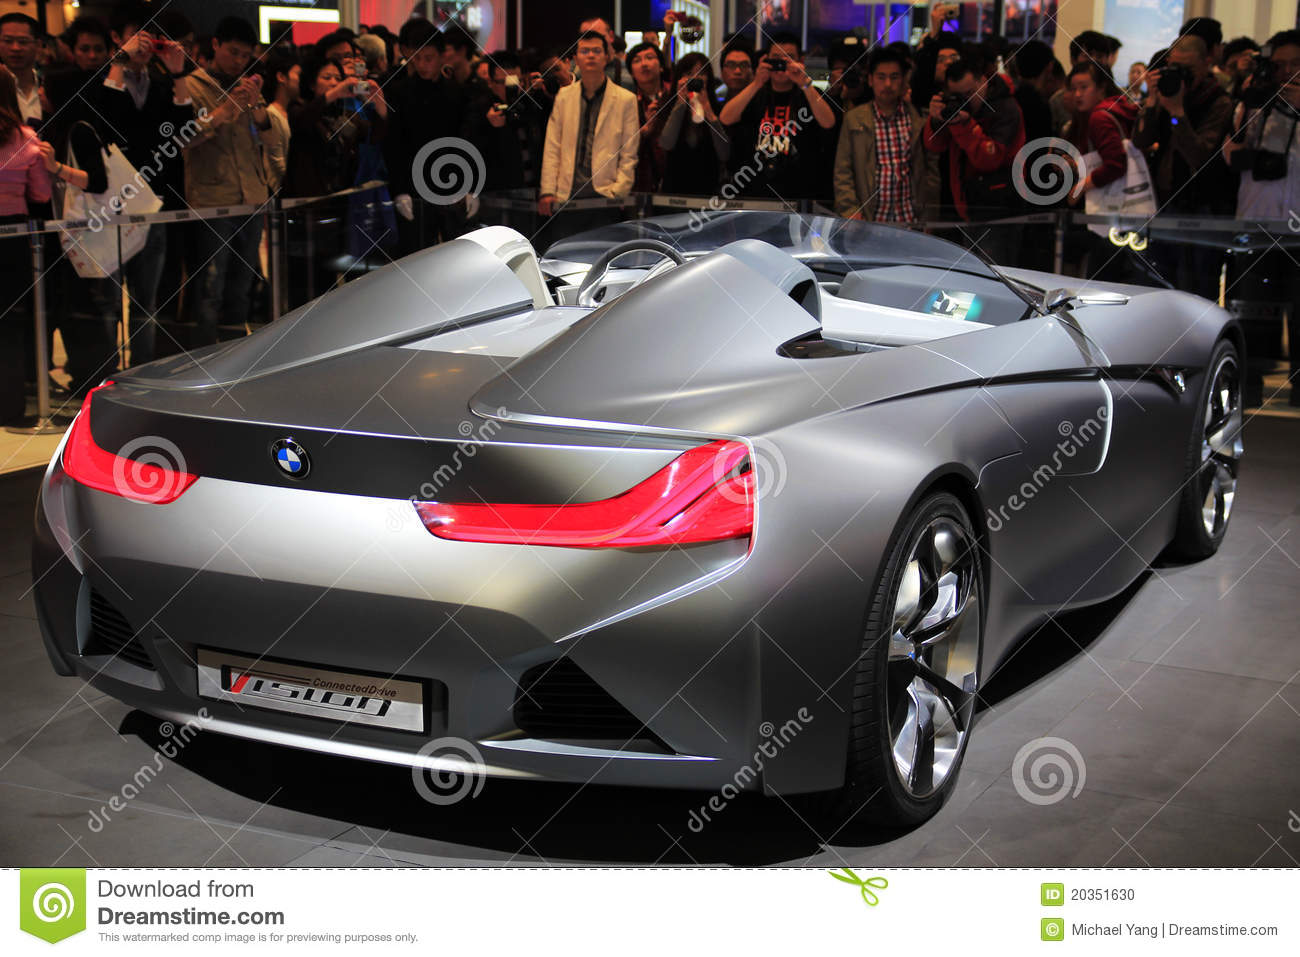 Bmw Vision Connecteddrive Two Seater Sports Car Concept On